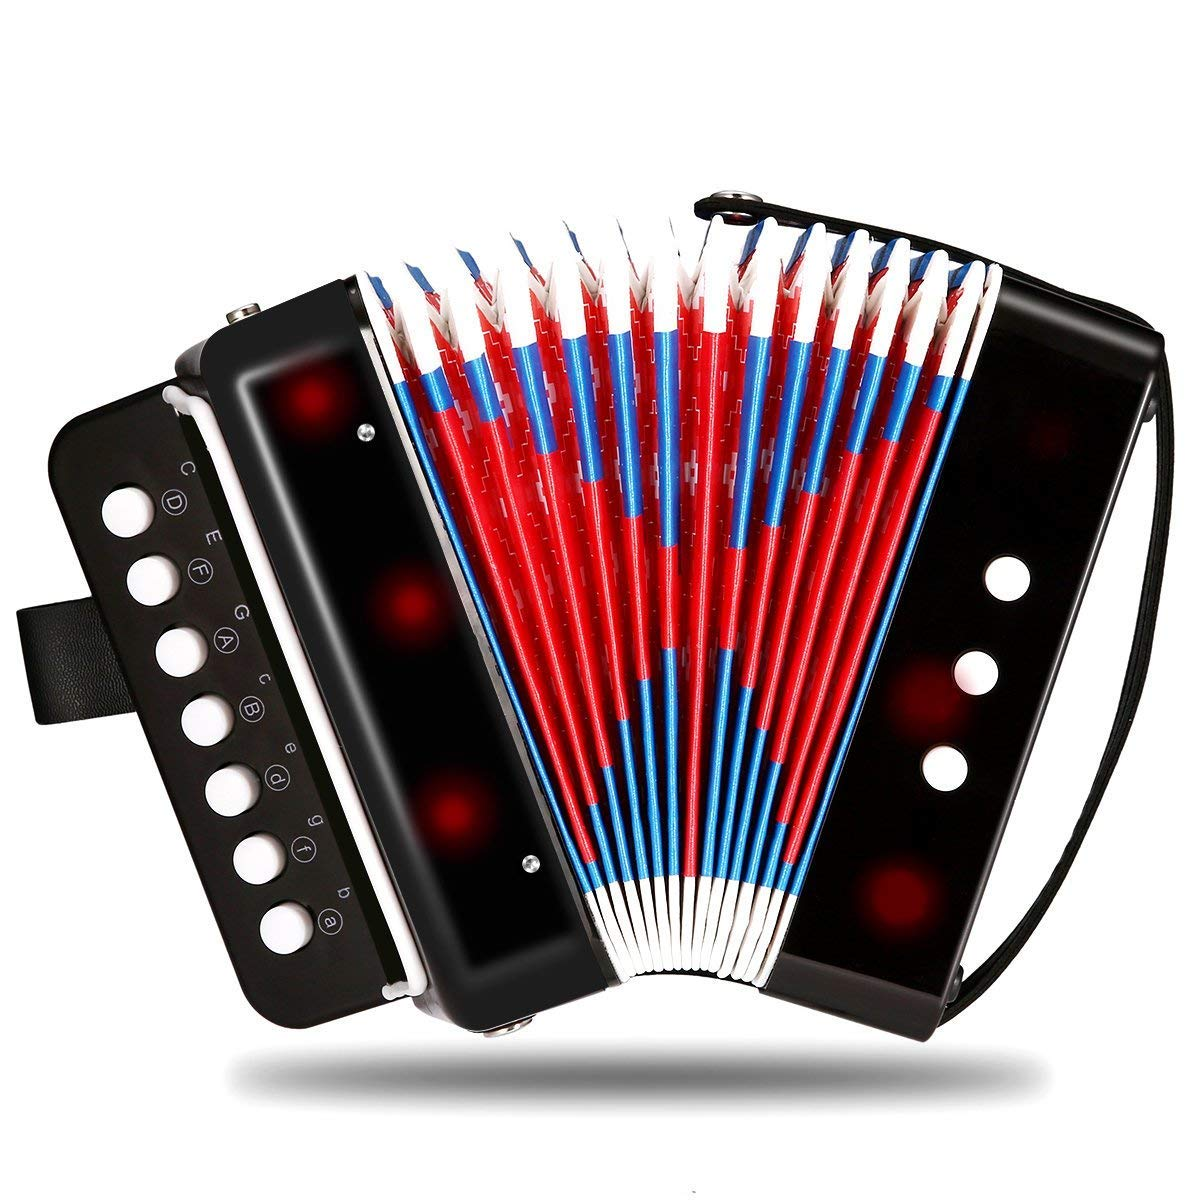 7 Keys 2 Bass Kids Toy Accordion Rhythm Band Musical Instrument Toy - for Children Birthday Gifts,Beginner, musicians over 3 Years Old (Safe Design No need Battery,Power) VTOP Online Shop